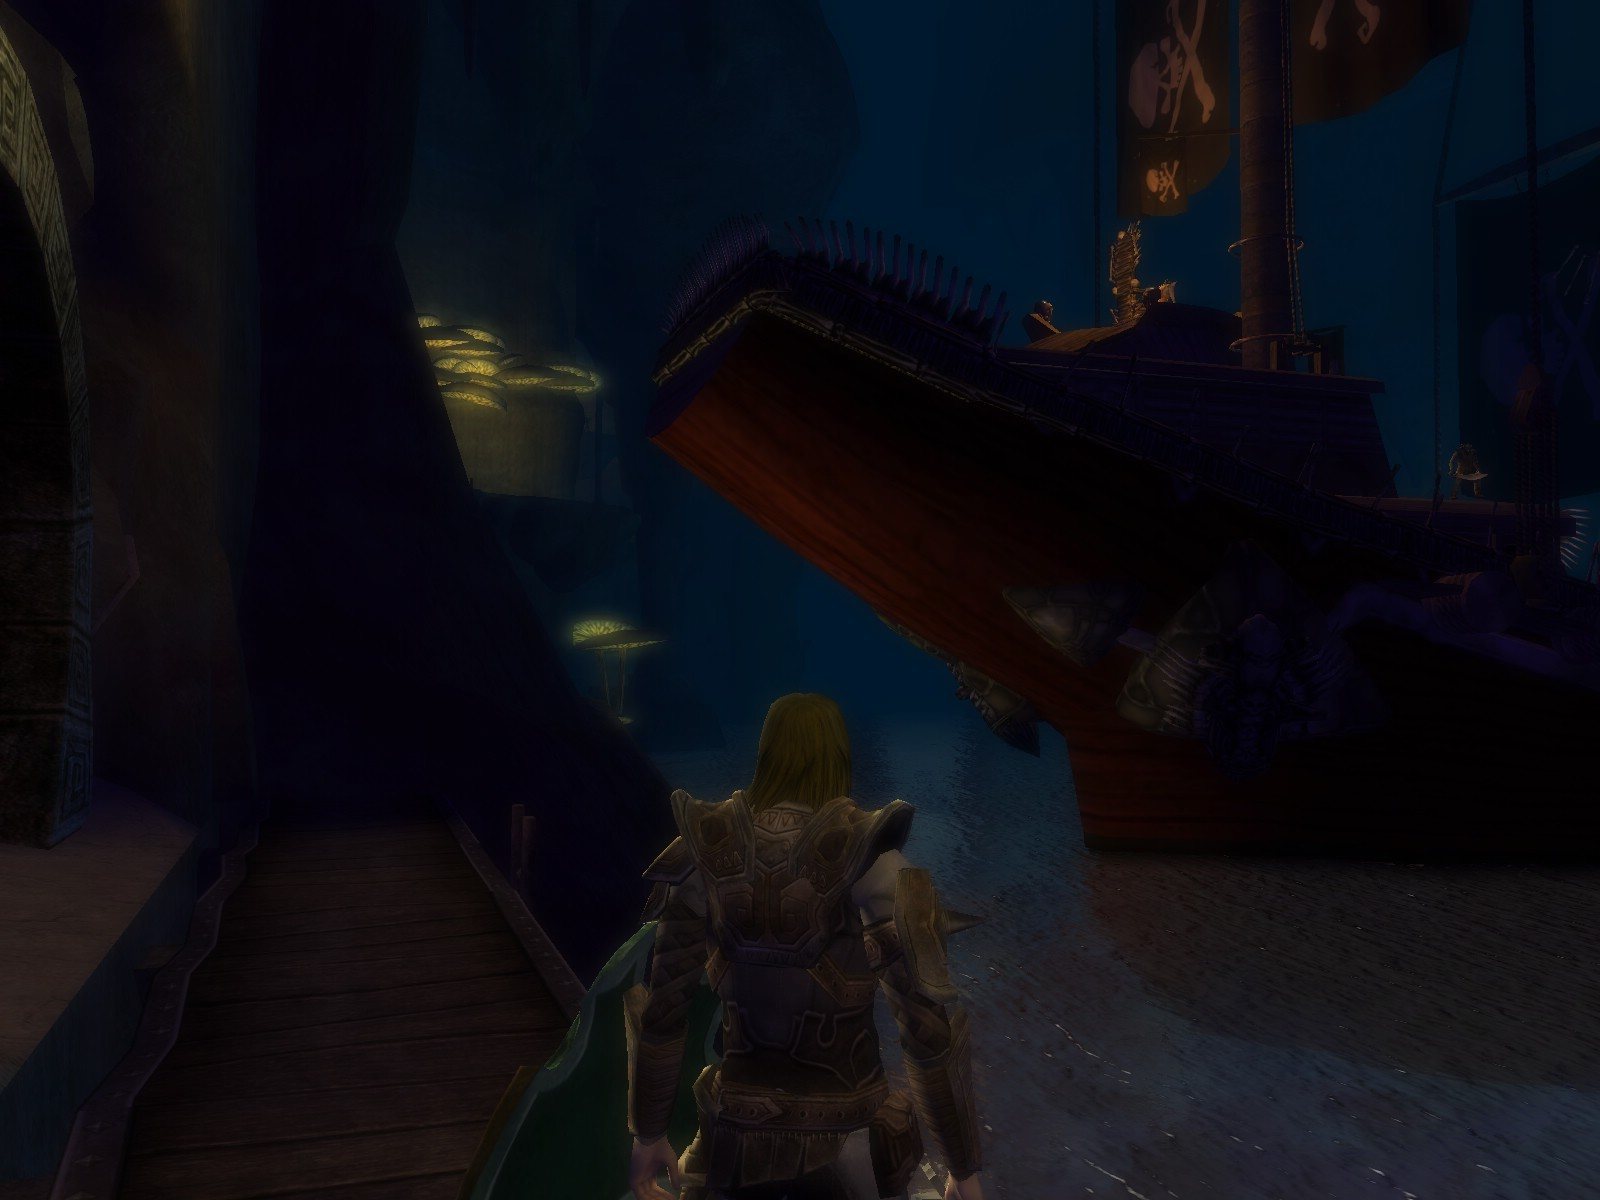 Dungeons & Dragons Online - DDO: Seems like decoration, right? Lets check it...